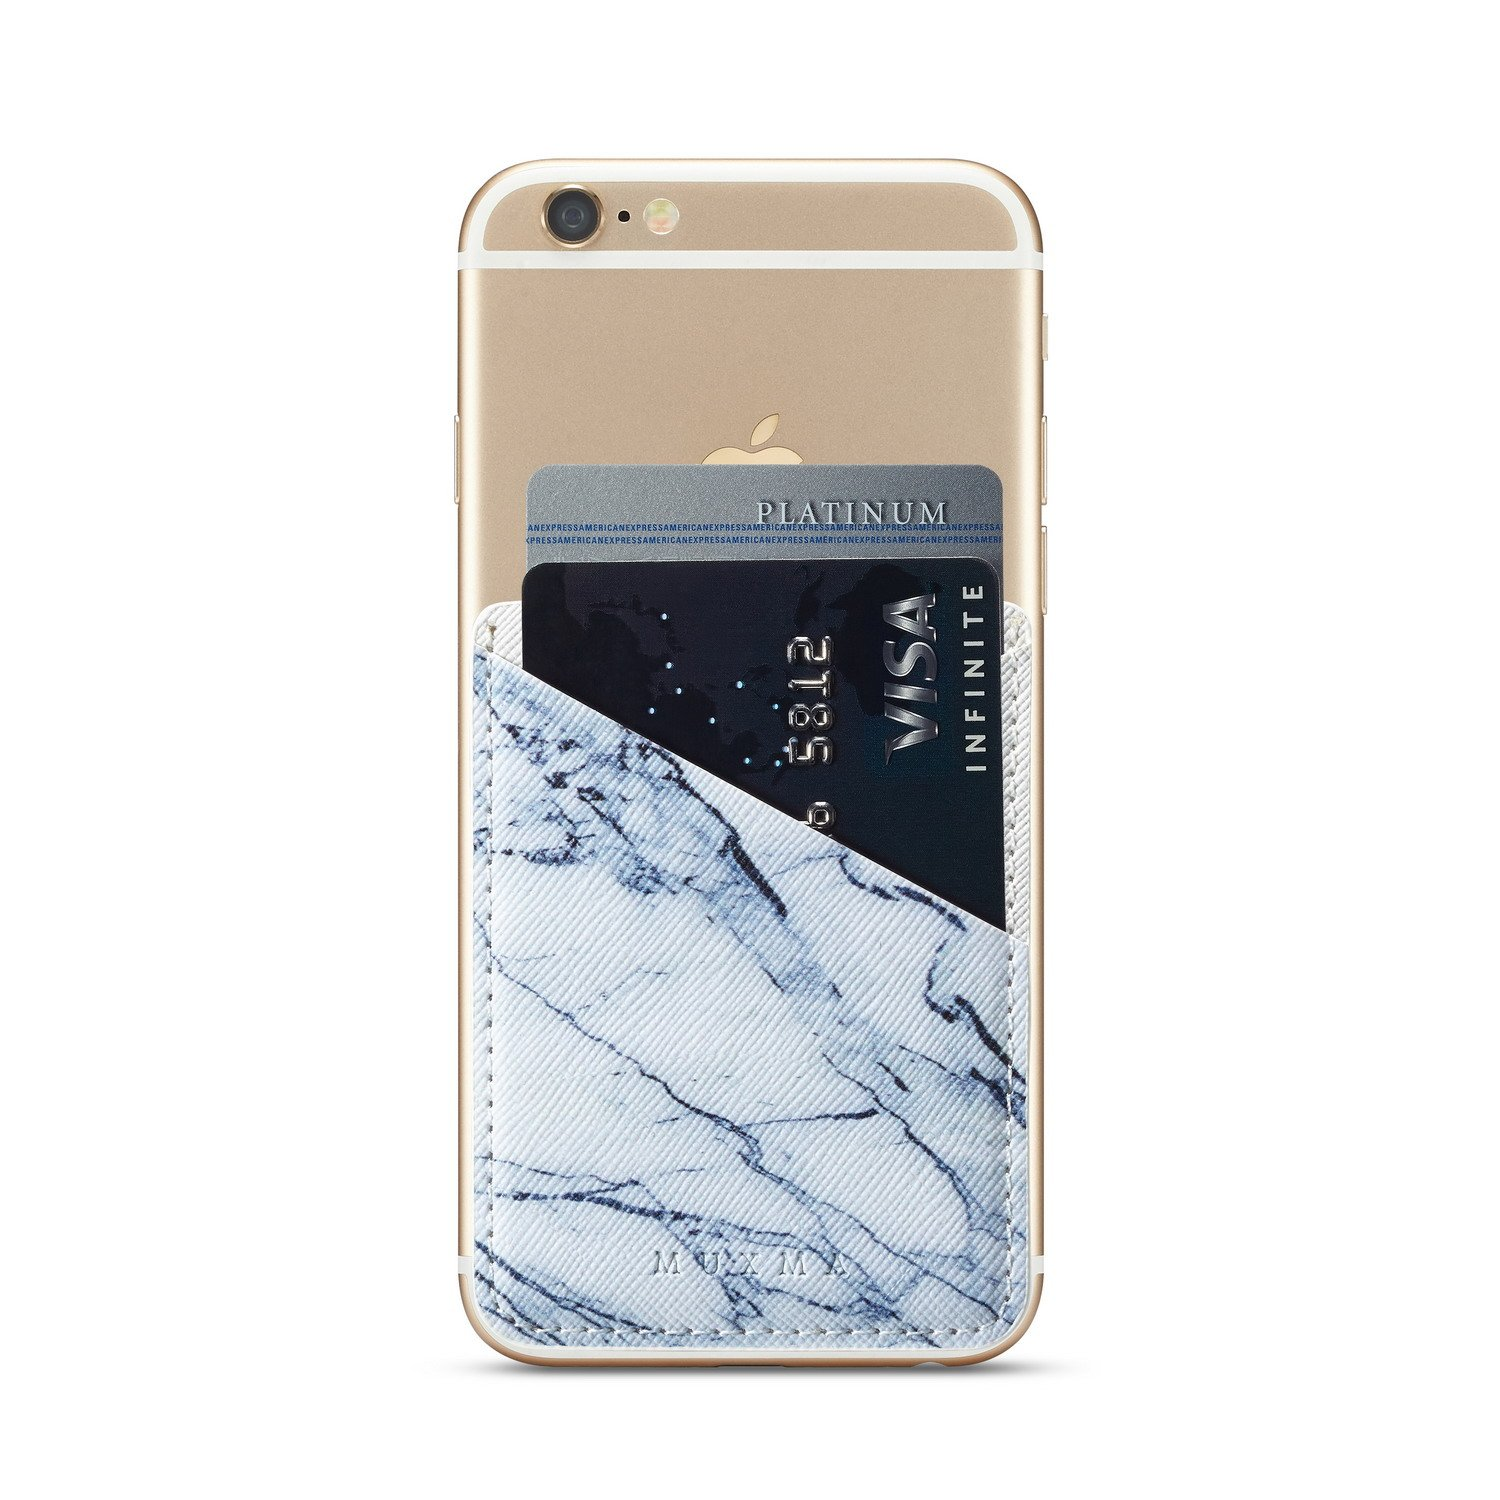 (Three) Stretchy Marble Cell Phone Stick On Wallet Card Holder Phone Pocket iPhone, Android All Smartphones (Marble Pattern) by Heast (Image #9)